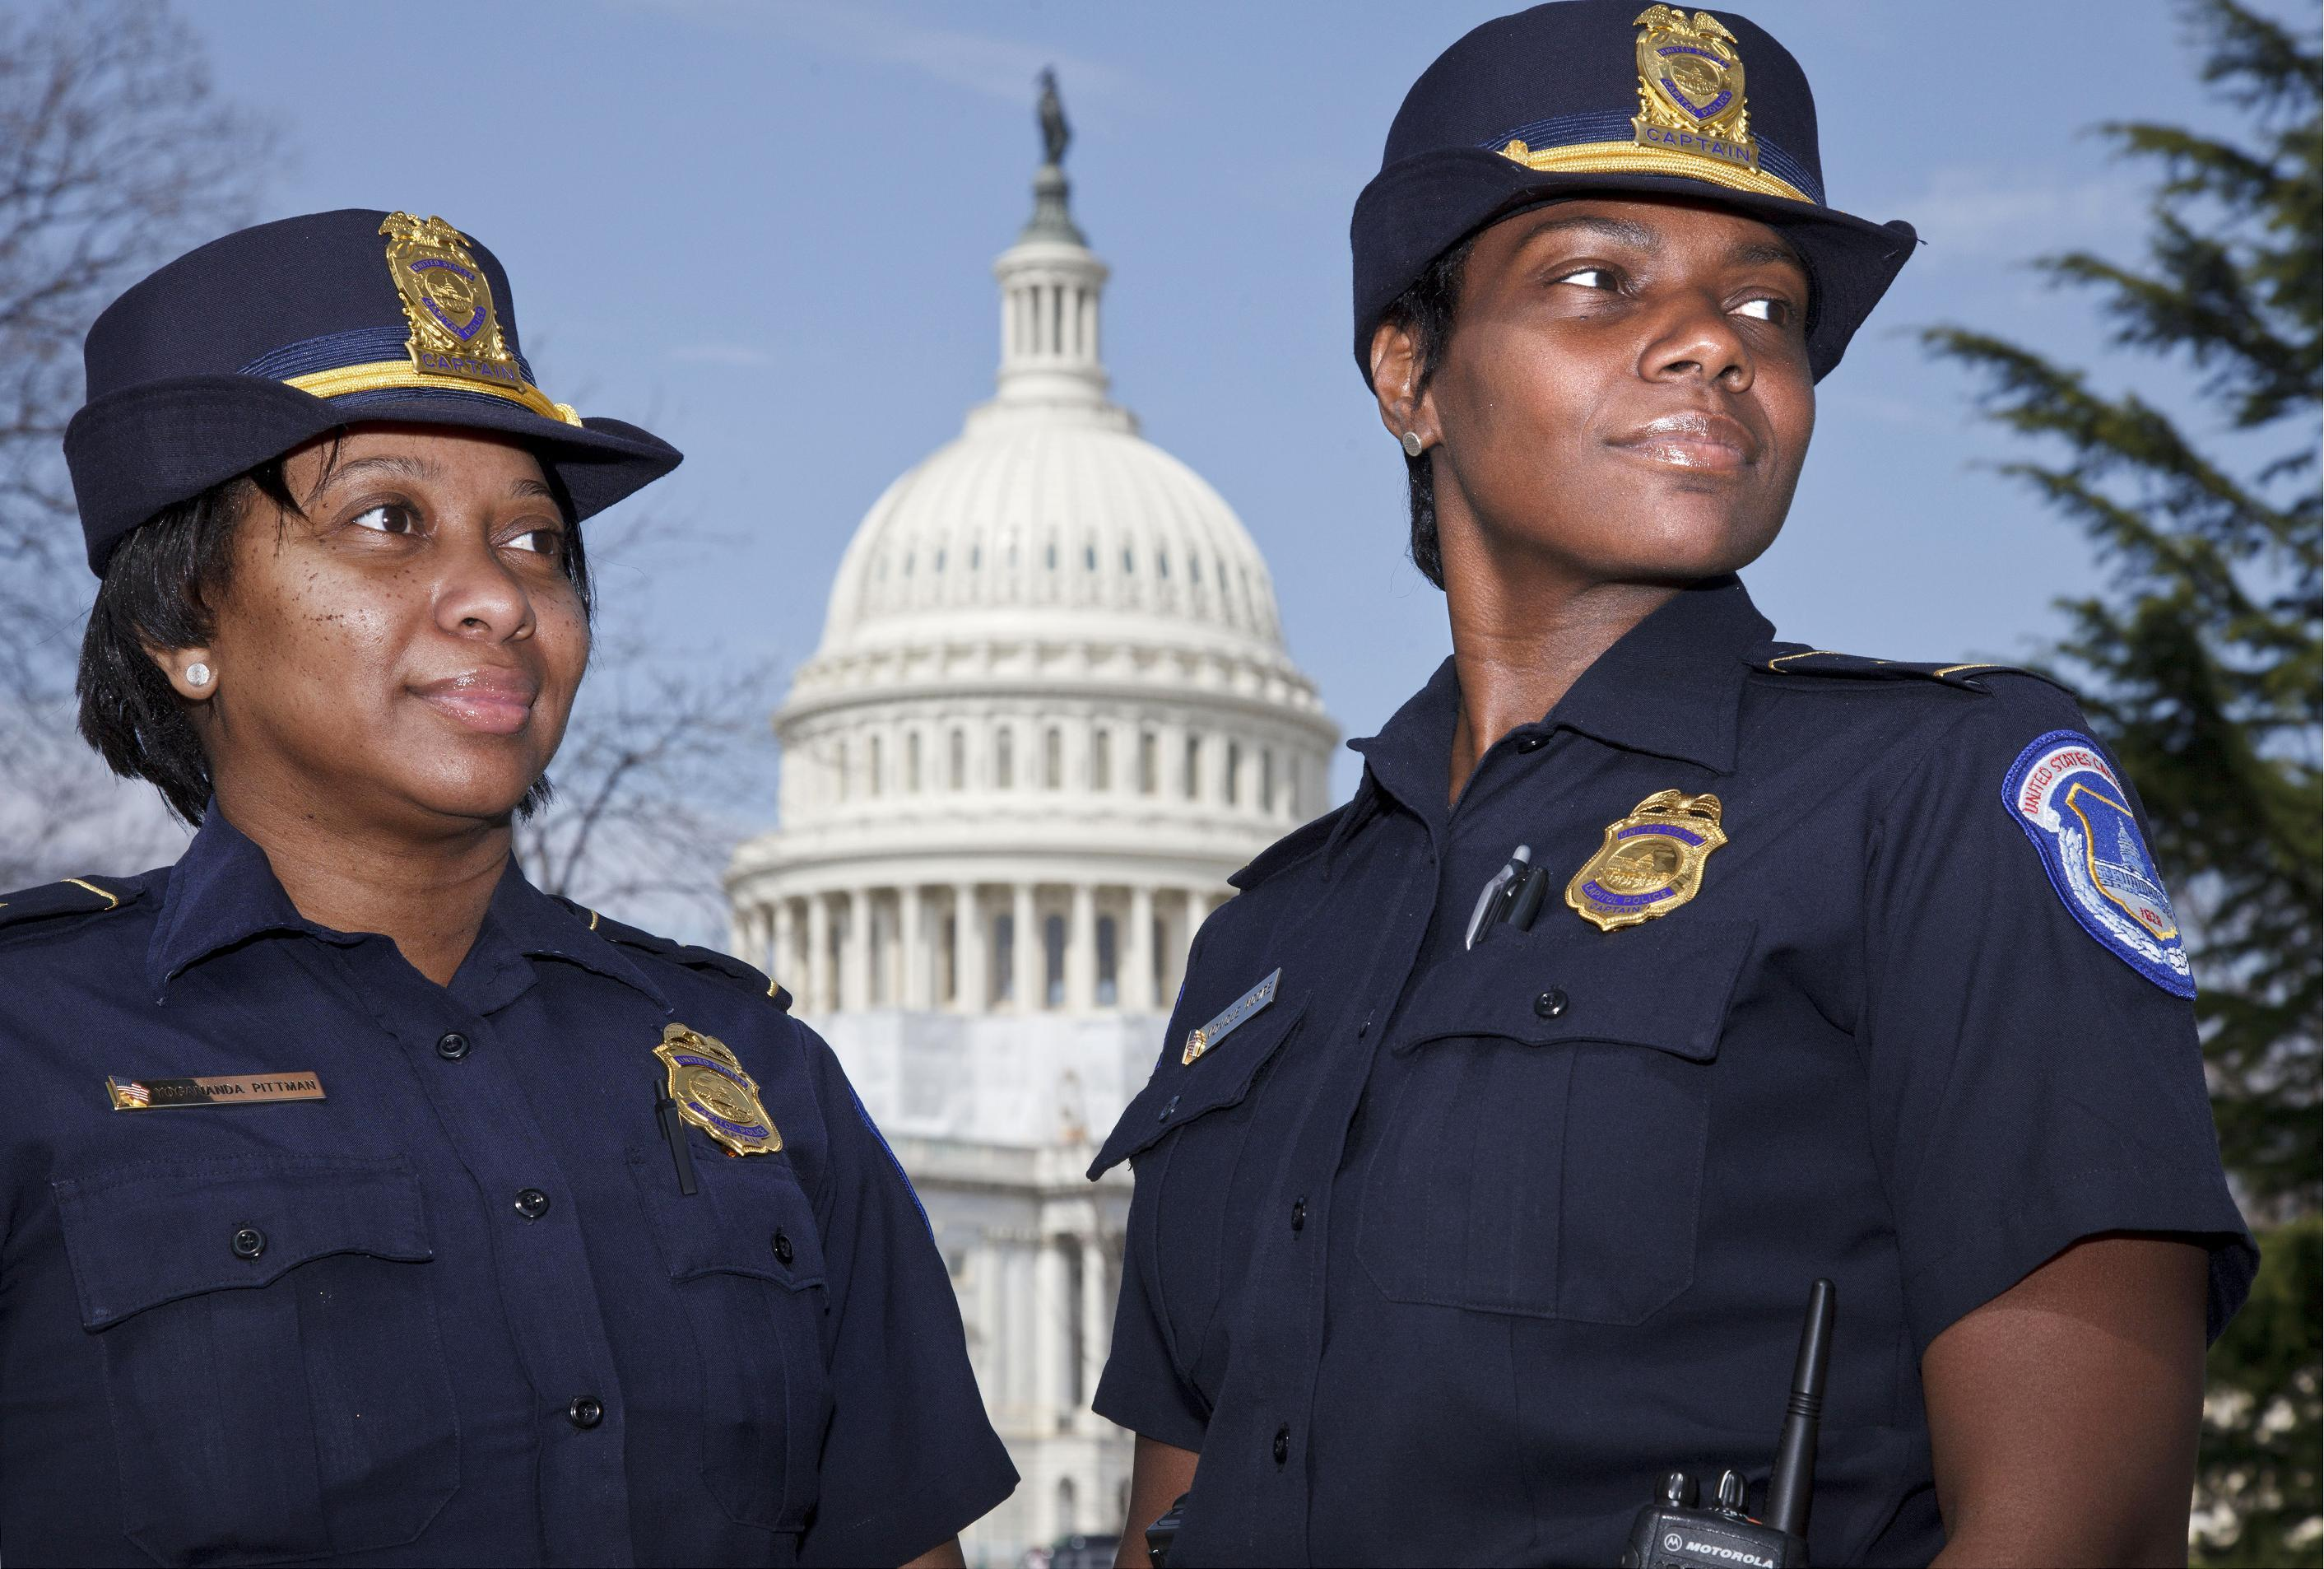 """Officers Yogananda """"Yogi"""" Pittman, left, and Monique Moore, right, the first two African-American women to be promoted to the rank of captain on the U.S. Capitol Police force, stand together on the East Lawn of the Capitol in Washington, Monday, March 19, 2012. (AP Photo/J. Scott Applewhite)"""